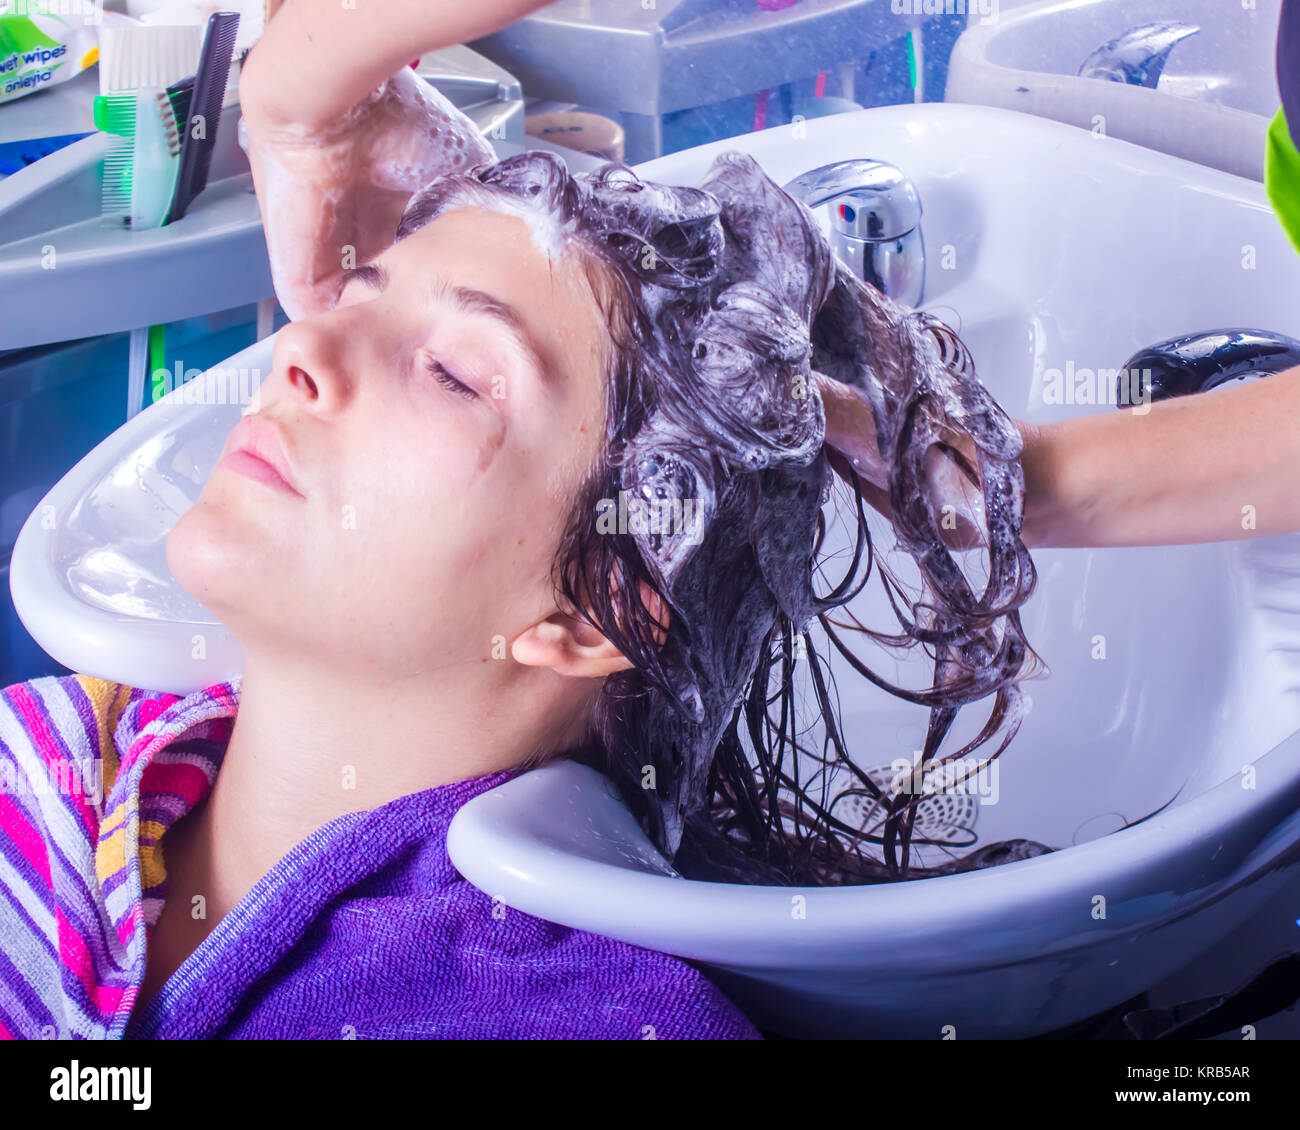 Woman Washing Hair In Hair Salon With Head Backward In The Sink Having Wet  Hair And